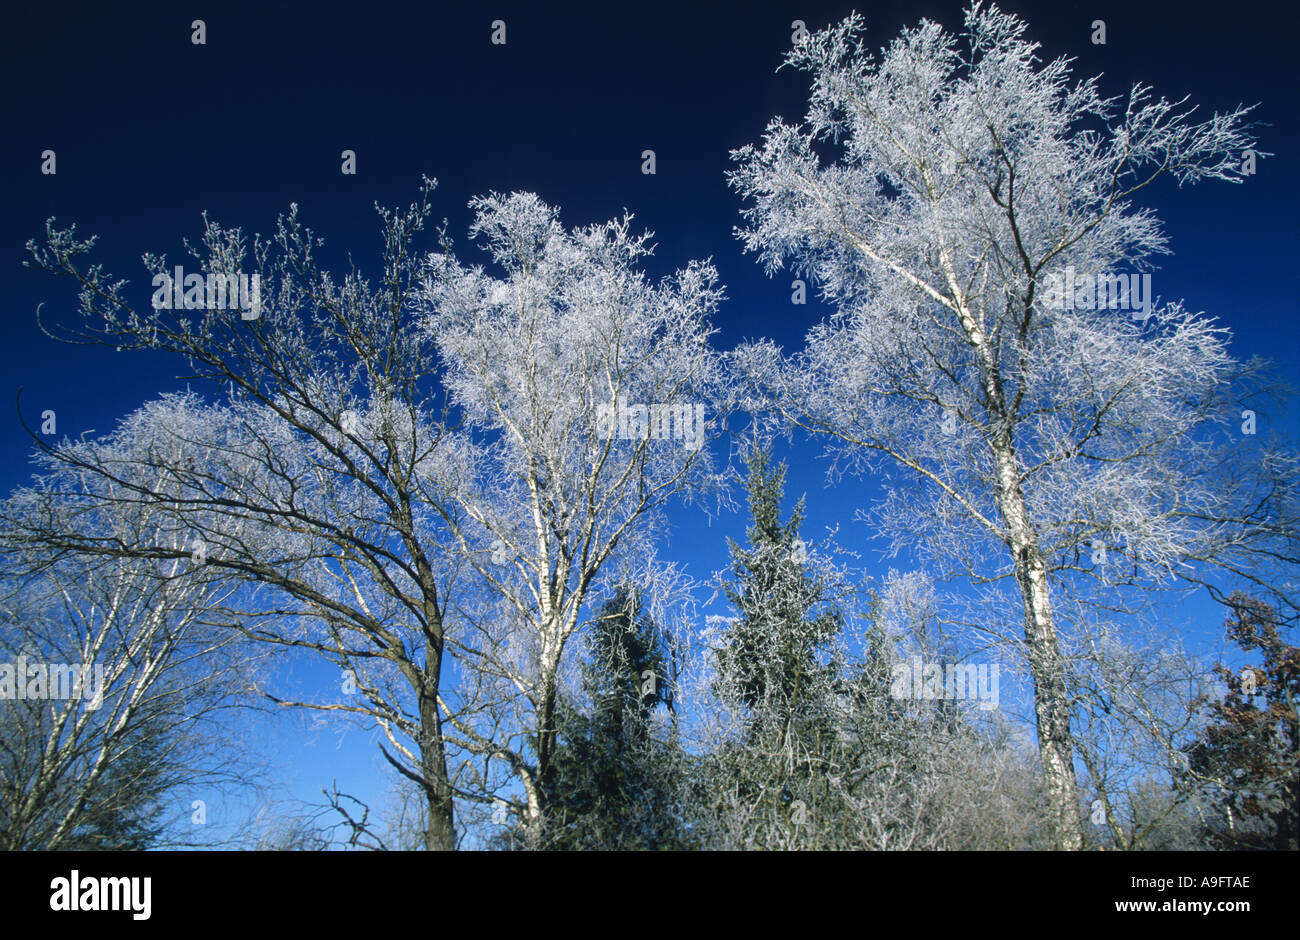 treetops covered with whitefrost, blue sky above, Germany, Oberbayern, Nature Reserve Maisinger See. Stock Photo